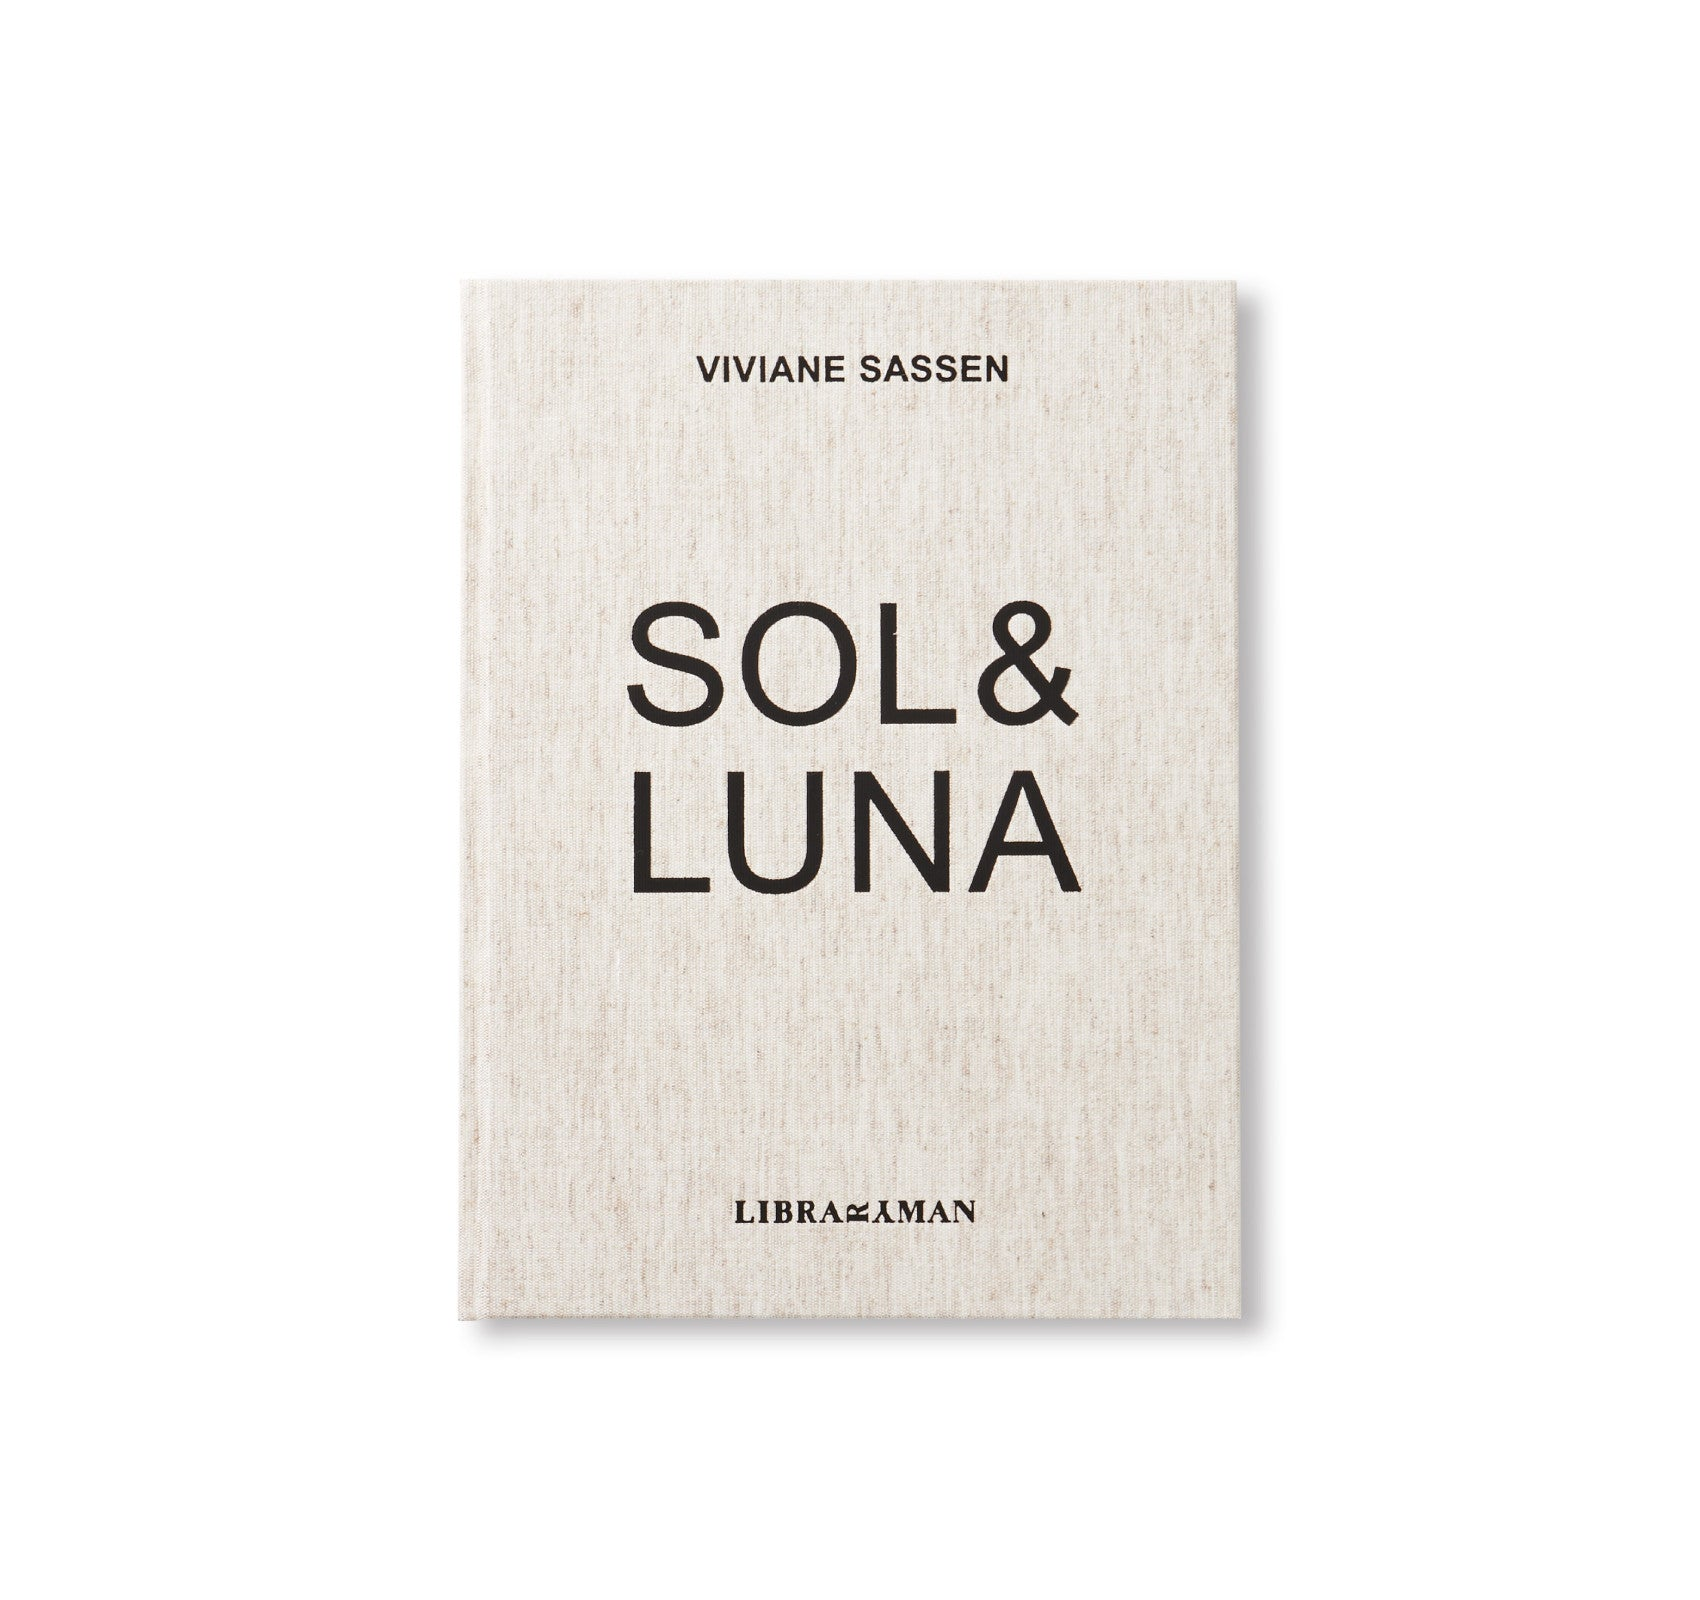 SOL & LUNA by Viviane Sassen [SECOND EDITION]